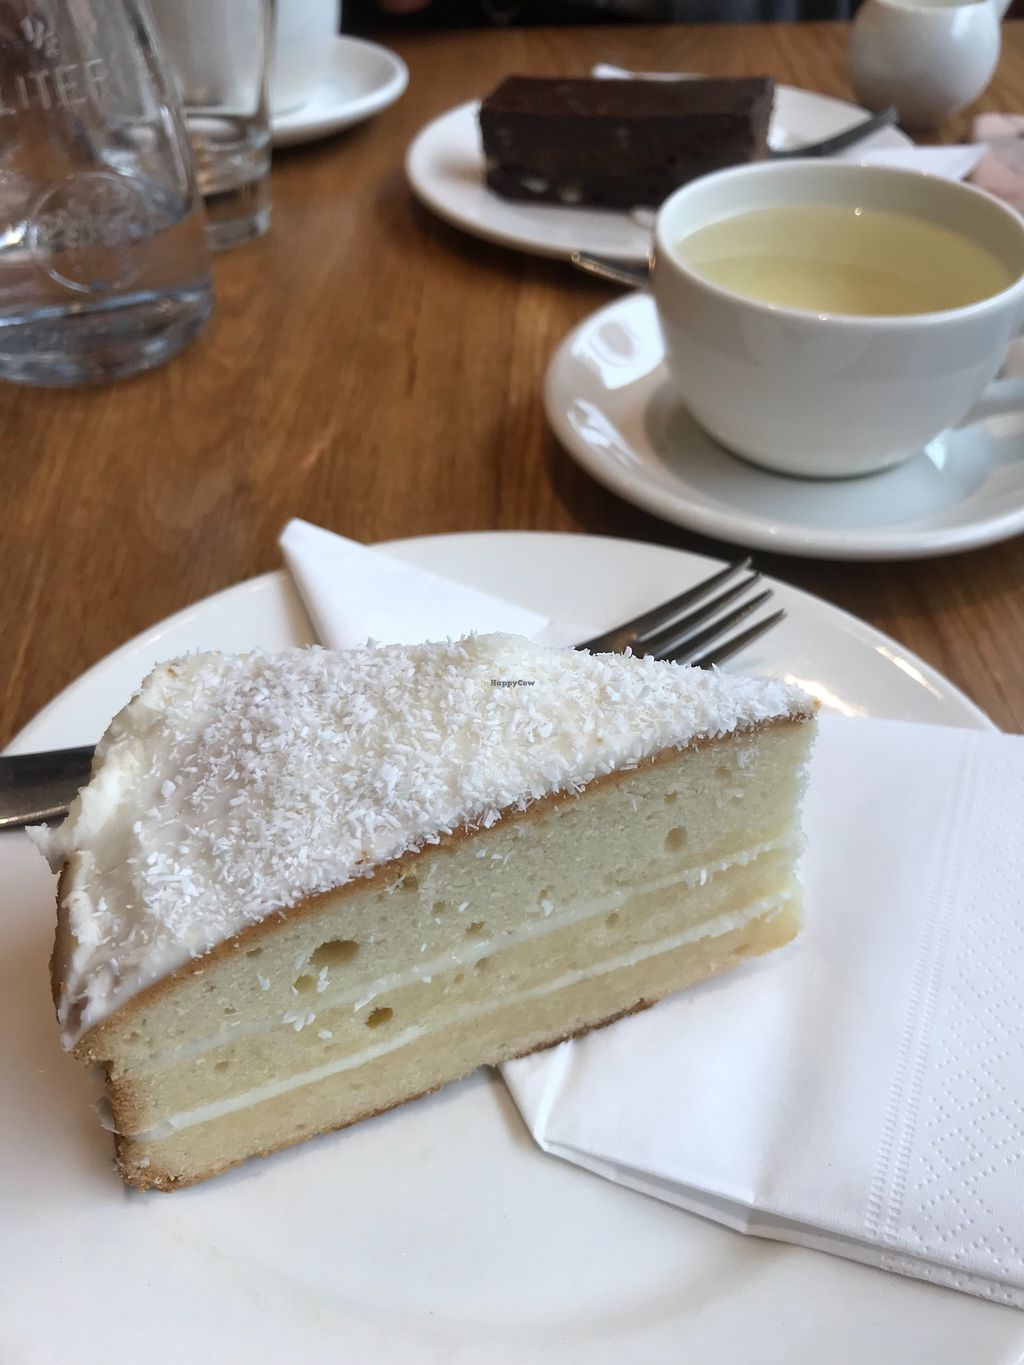 """Photo of Loudons Cafe and Bakery  by <a href=""""/members/profile/AshleighC"""">AshleighC</a> <br/>Loudons new pineapple coconut cake with coconut icing <br/> March 15, 2018  - <a href='/contact/abuse/image/105784/370982'>Report</a>"""